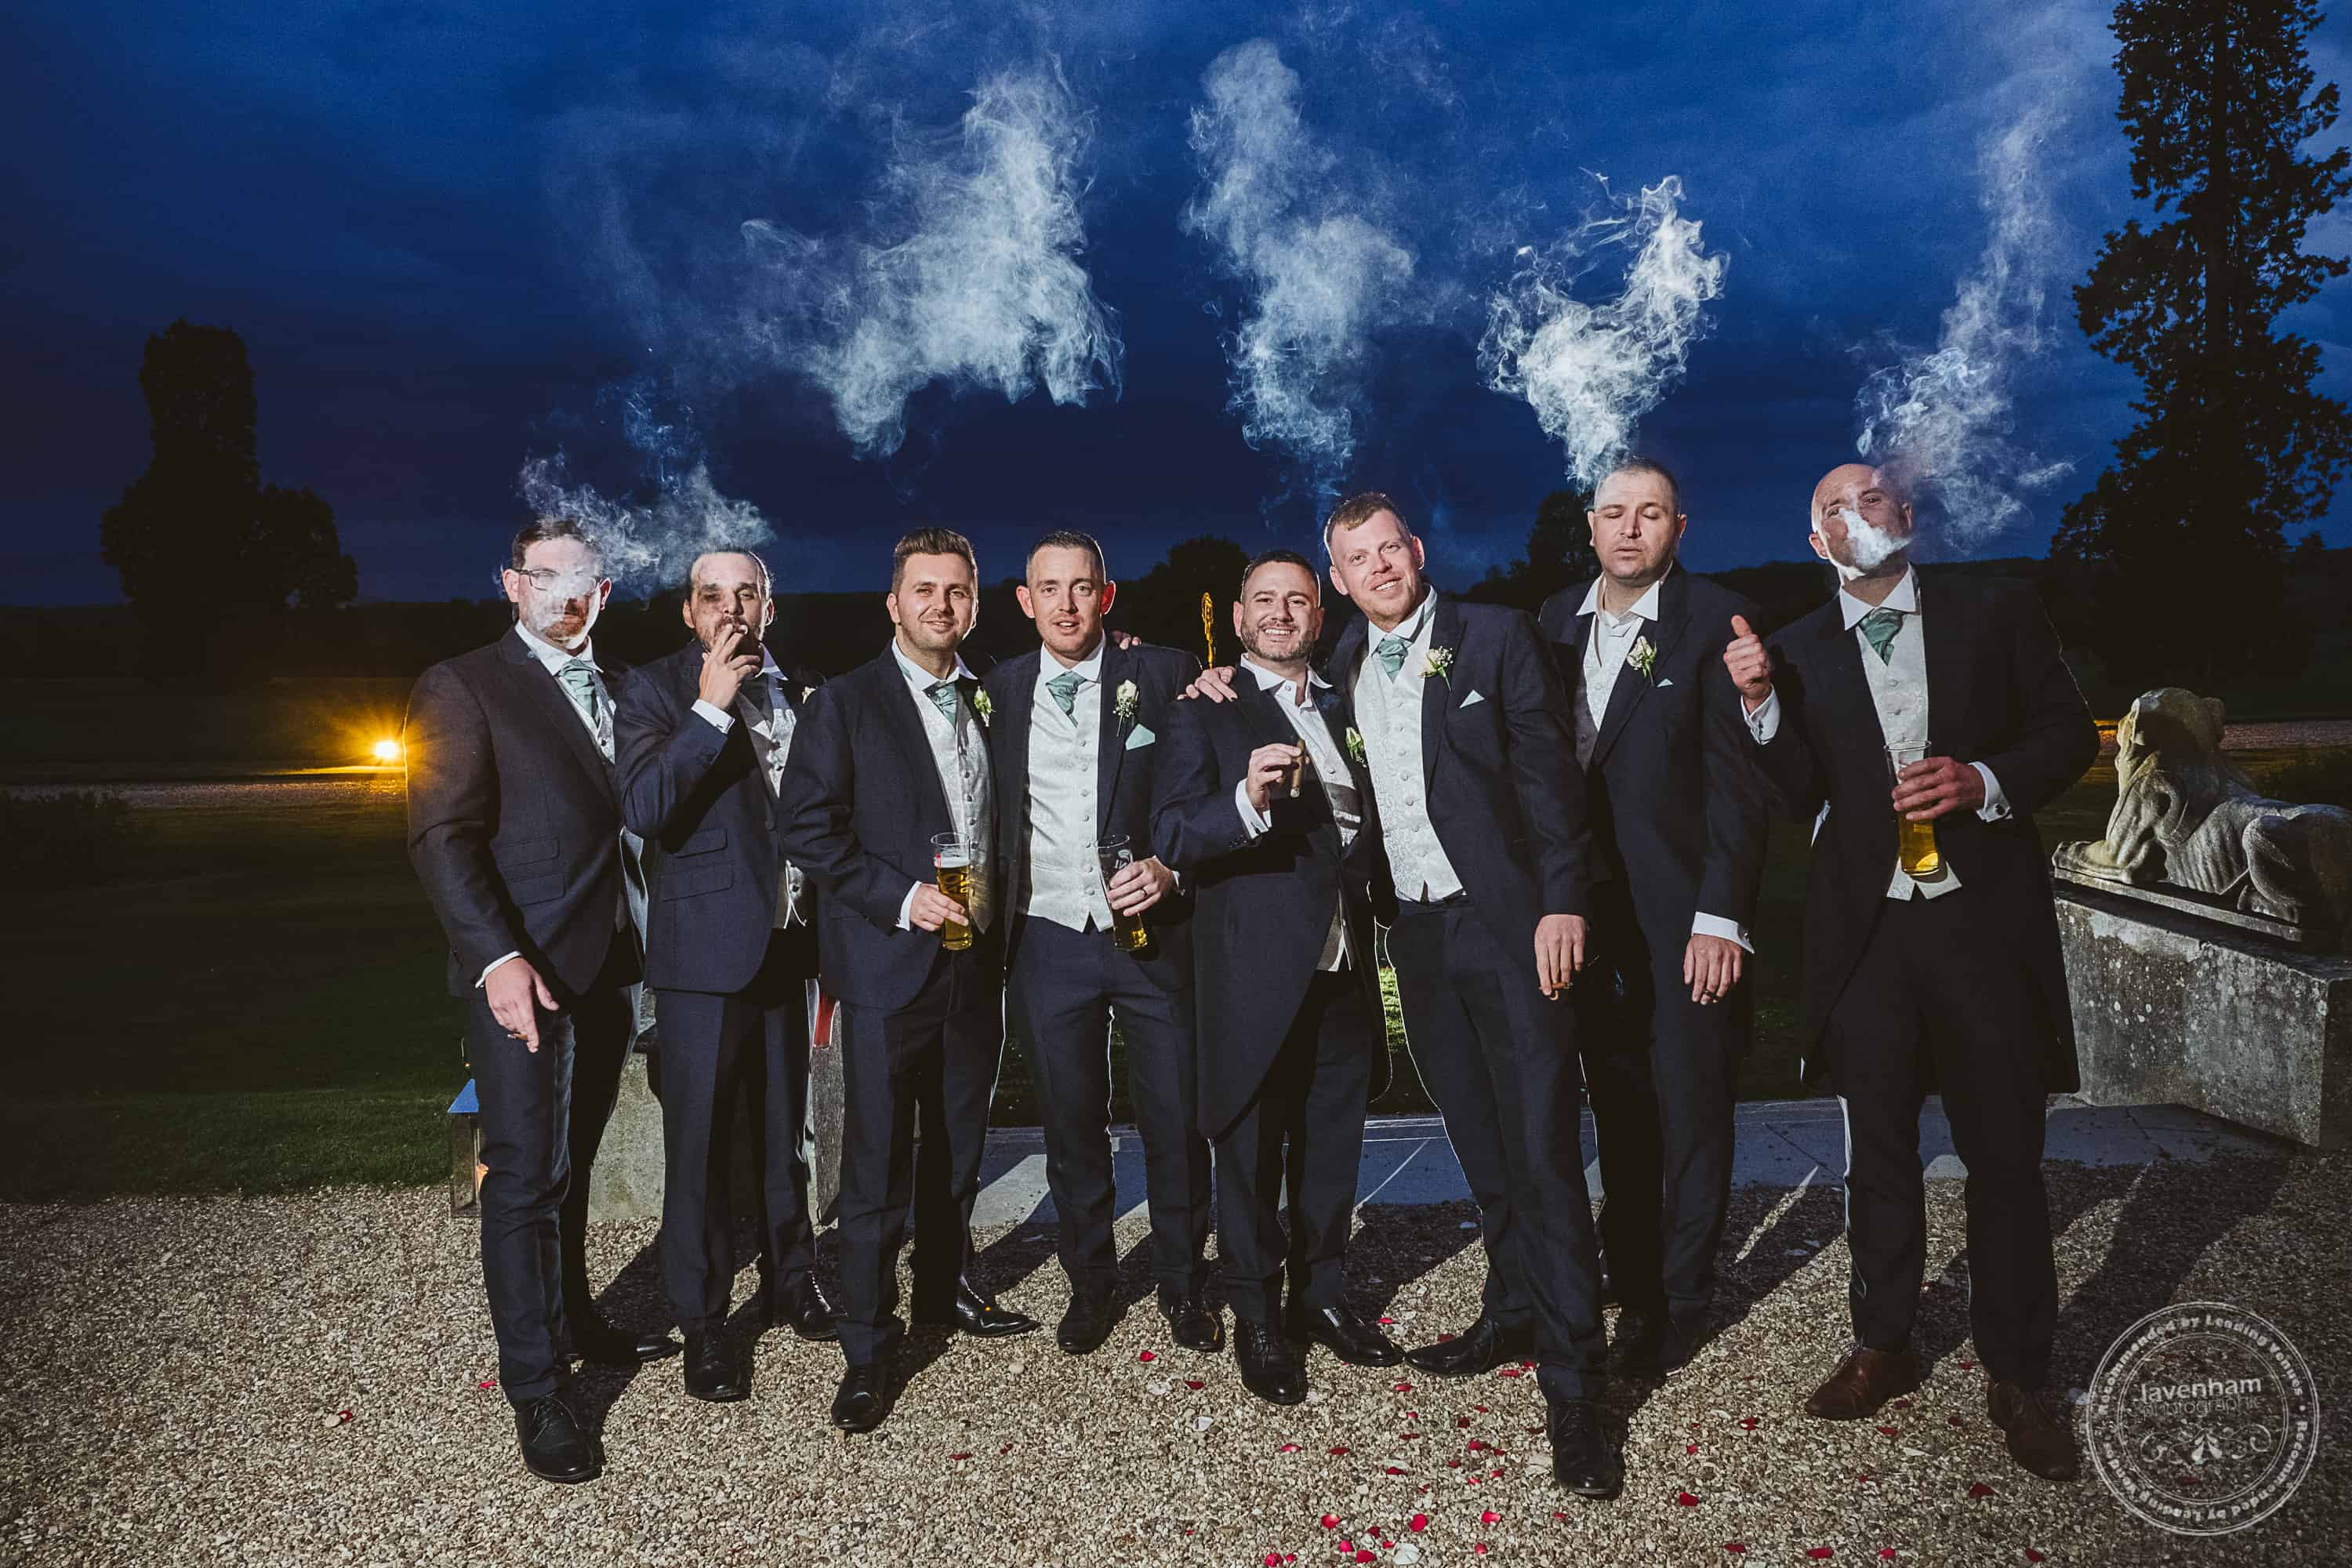 Evening photo of the groomsmen with cigars, their smoke picked out by off-camera flash lighting